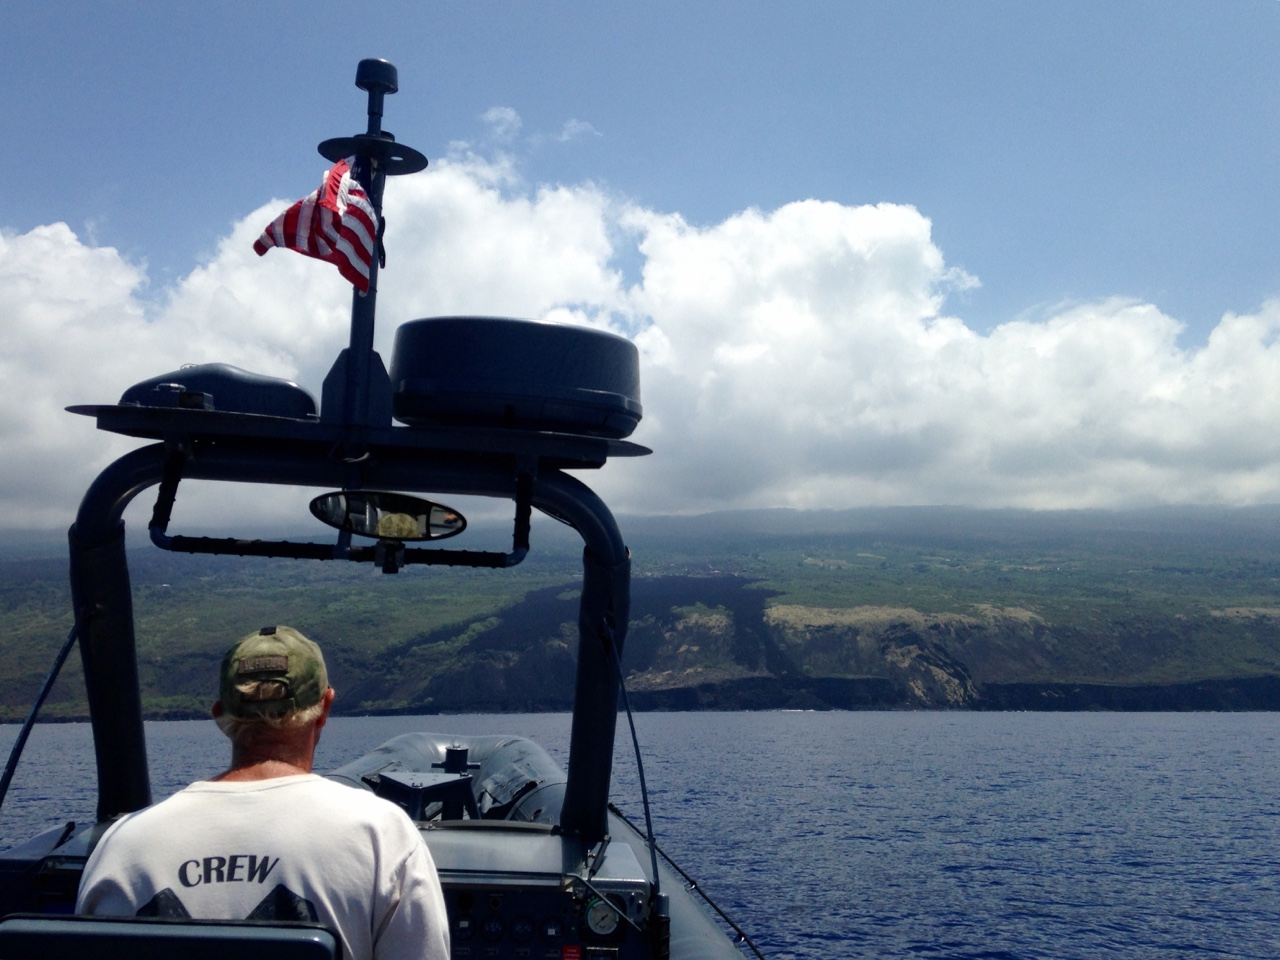 Awesomely amazing day ripping around the Kona Coast on this twin 470HP Rolls Royce jet drive USMI 11m Navy SEAL Ocean Warrior. Pilot whales, two species of sharks, a few sea turtles and countless beautiful reef fish.  For today's Hawaiian wildlife and more look here:  https://flic.kr/s/aHsk9qgHpz